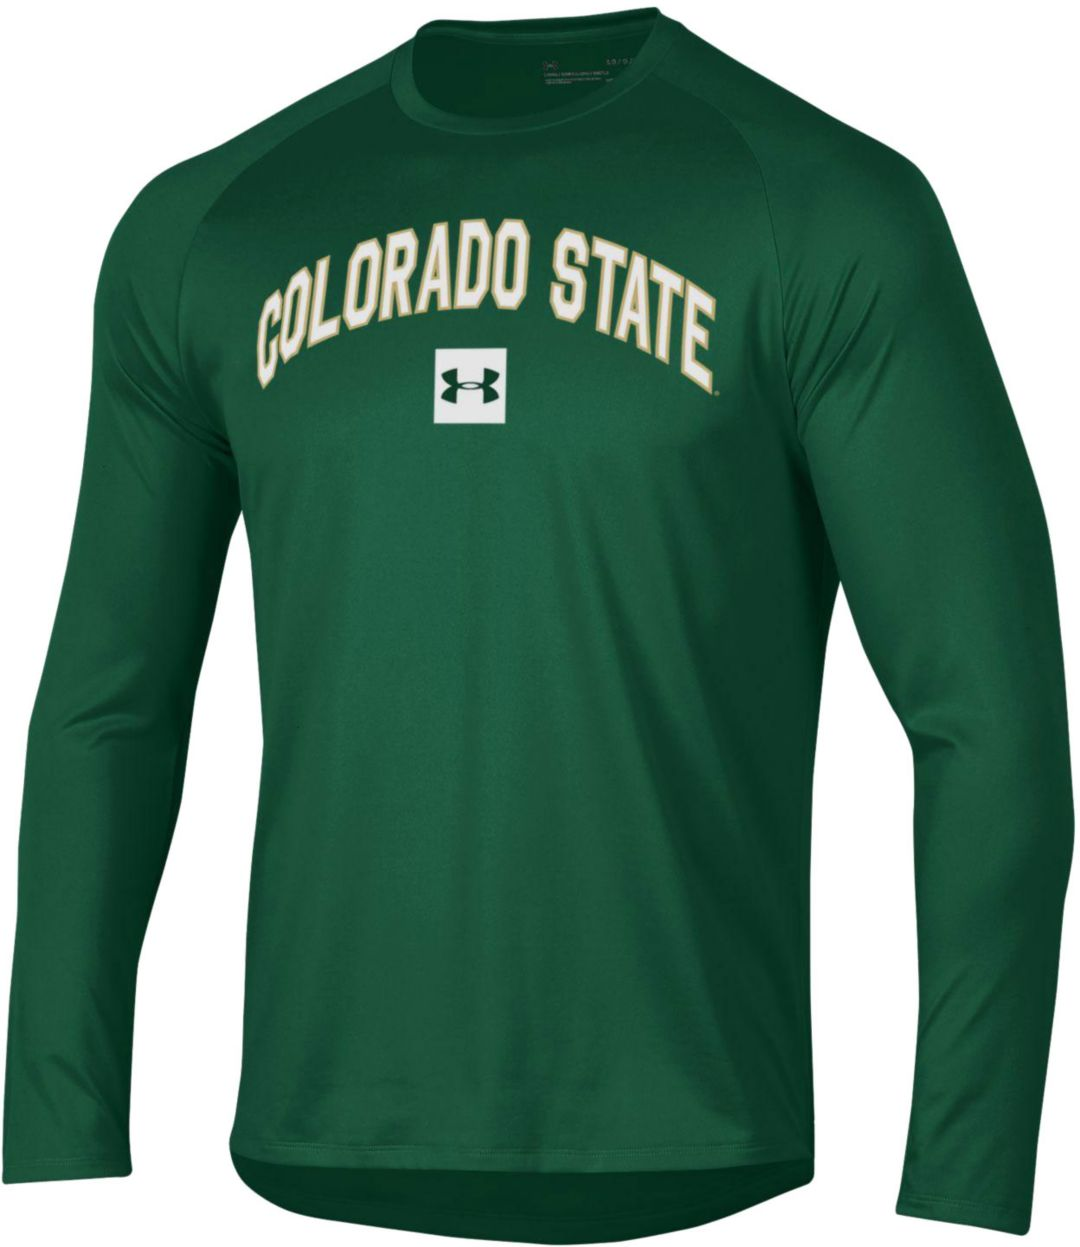 green under armour long sleeve